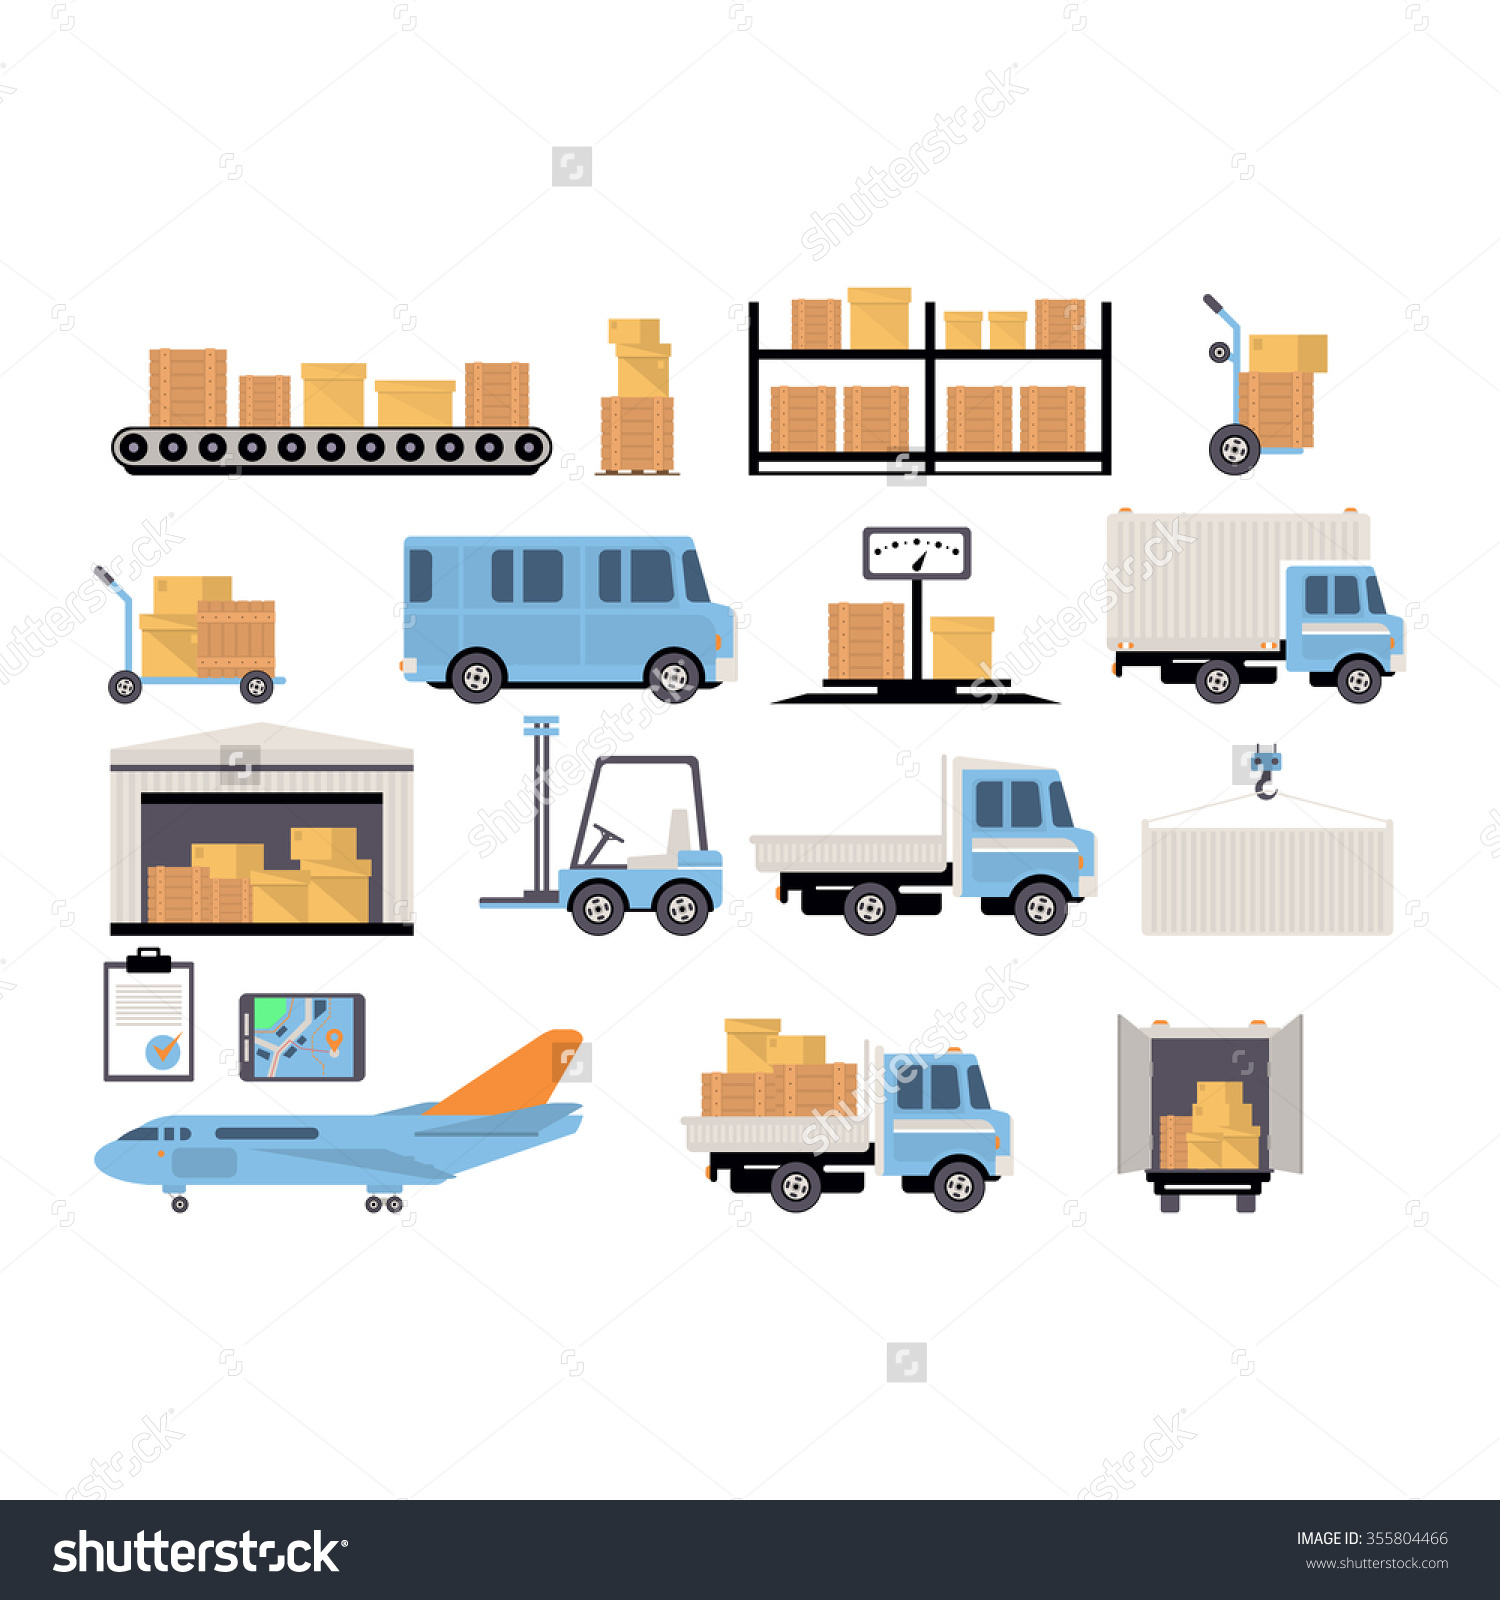 Warehouse Flat Set Logistics Packing Process Stock Vector.